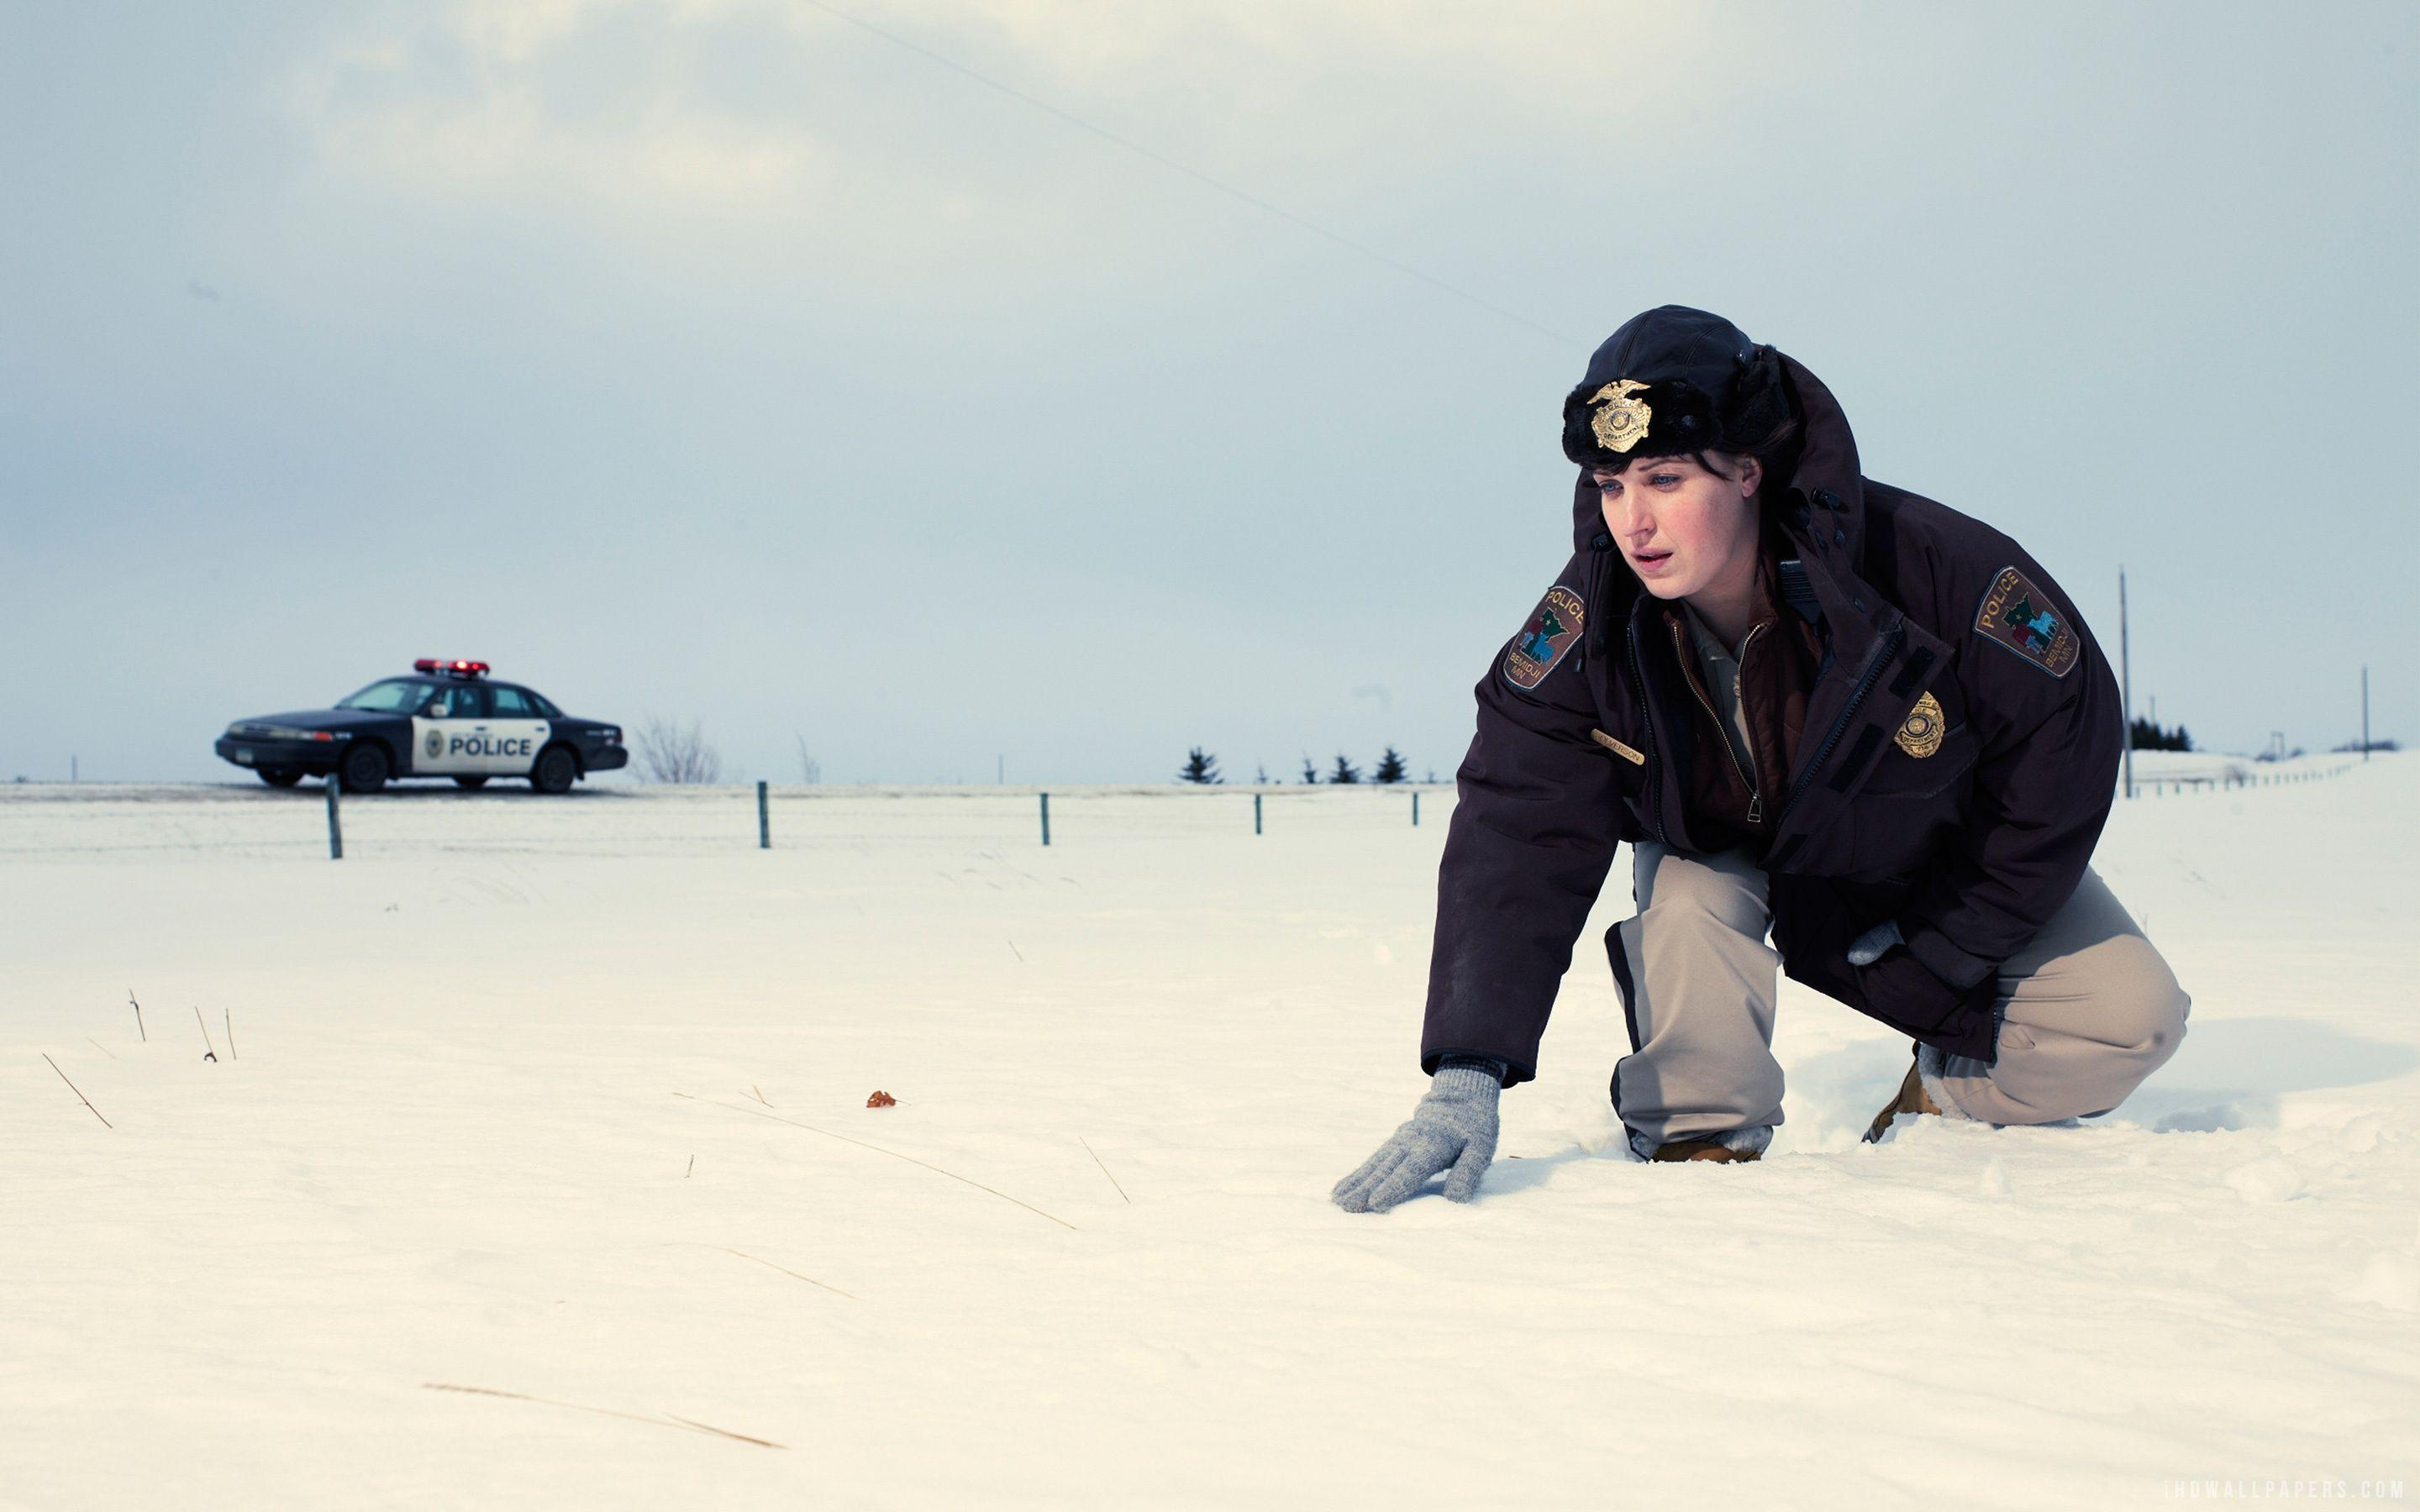 100% Quality Fargo Wallpapers, Fargo HD Backgrounds, 1920x1039